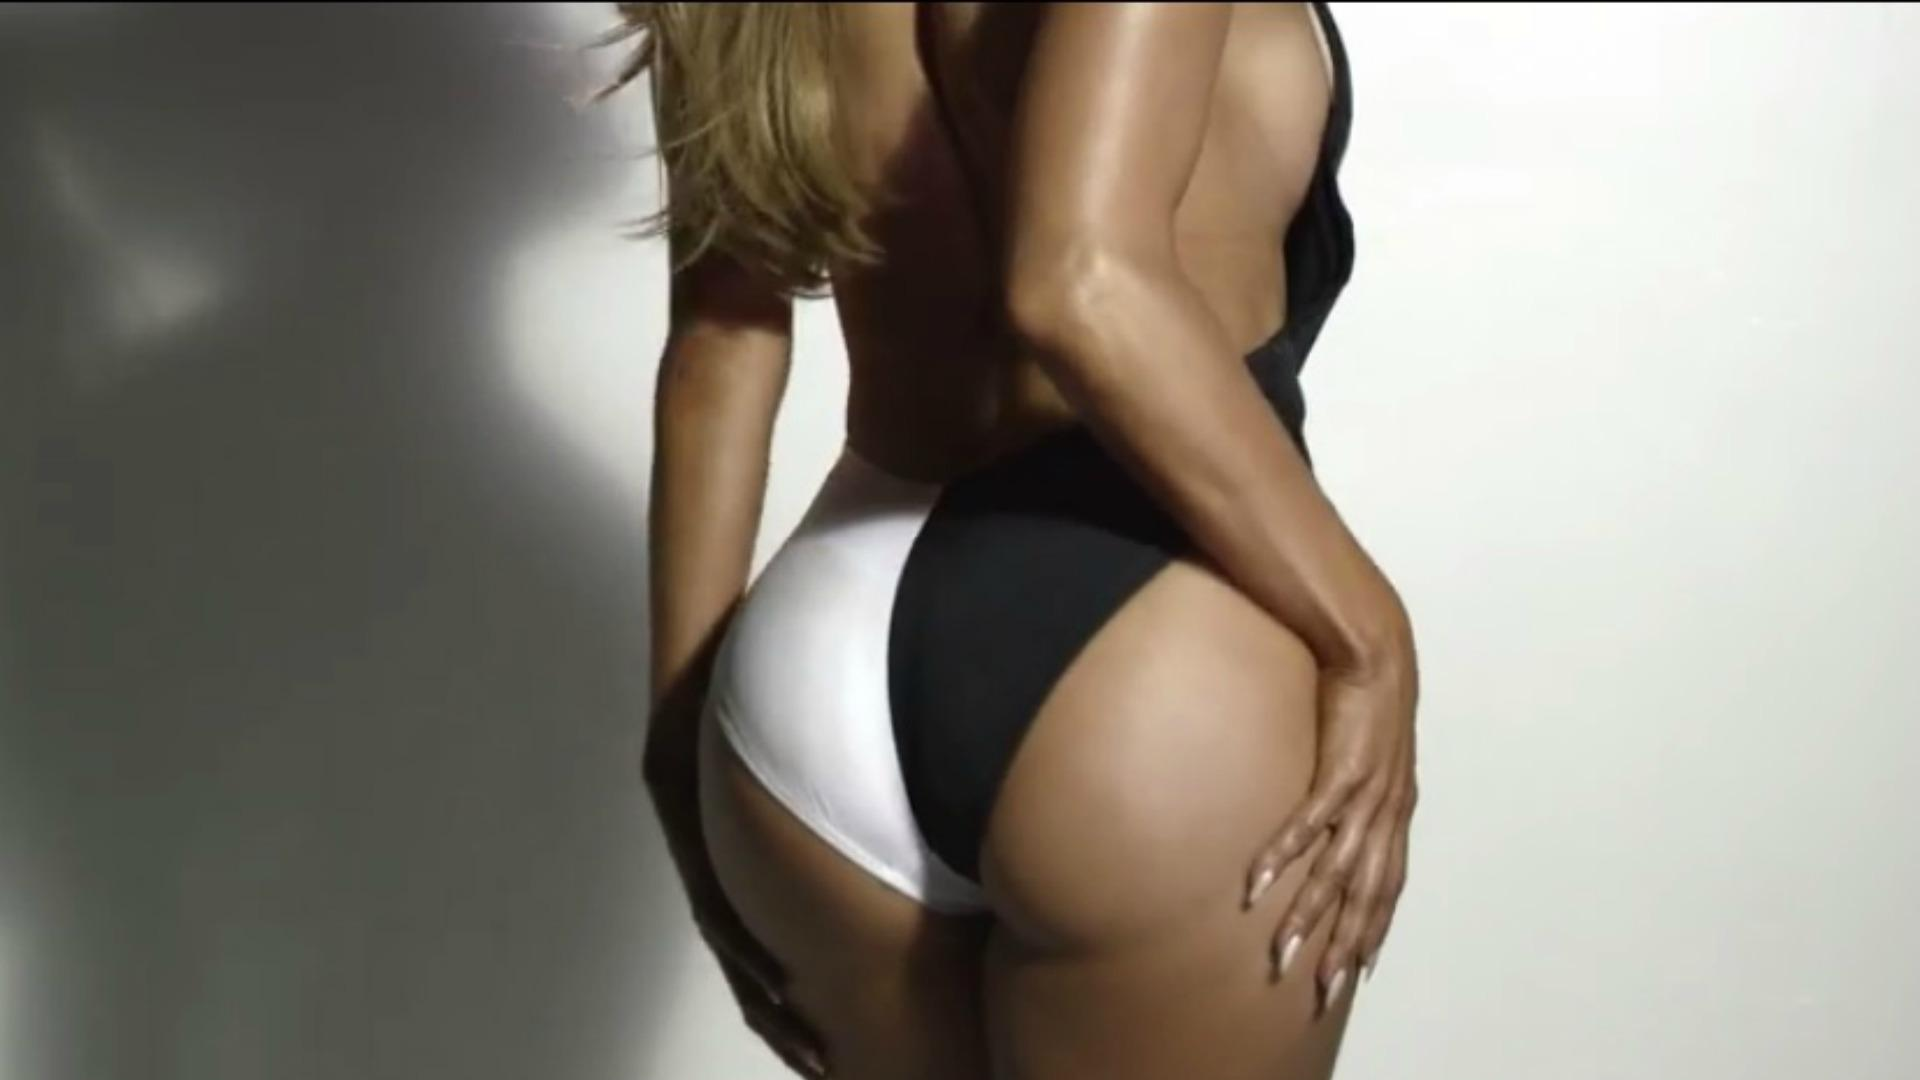 Iggy Azalea Booty Pictures jlo and iggy azalea 'booty' video offends people with brains